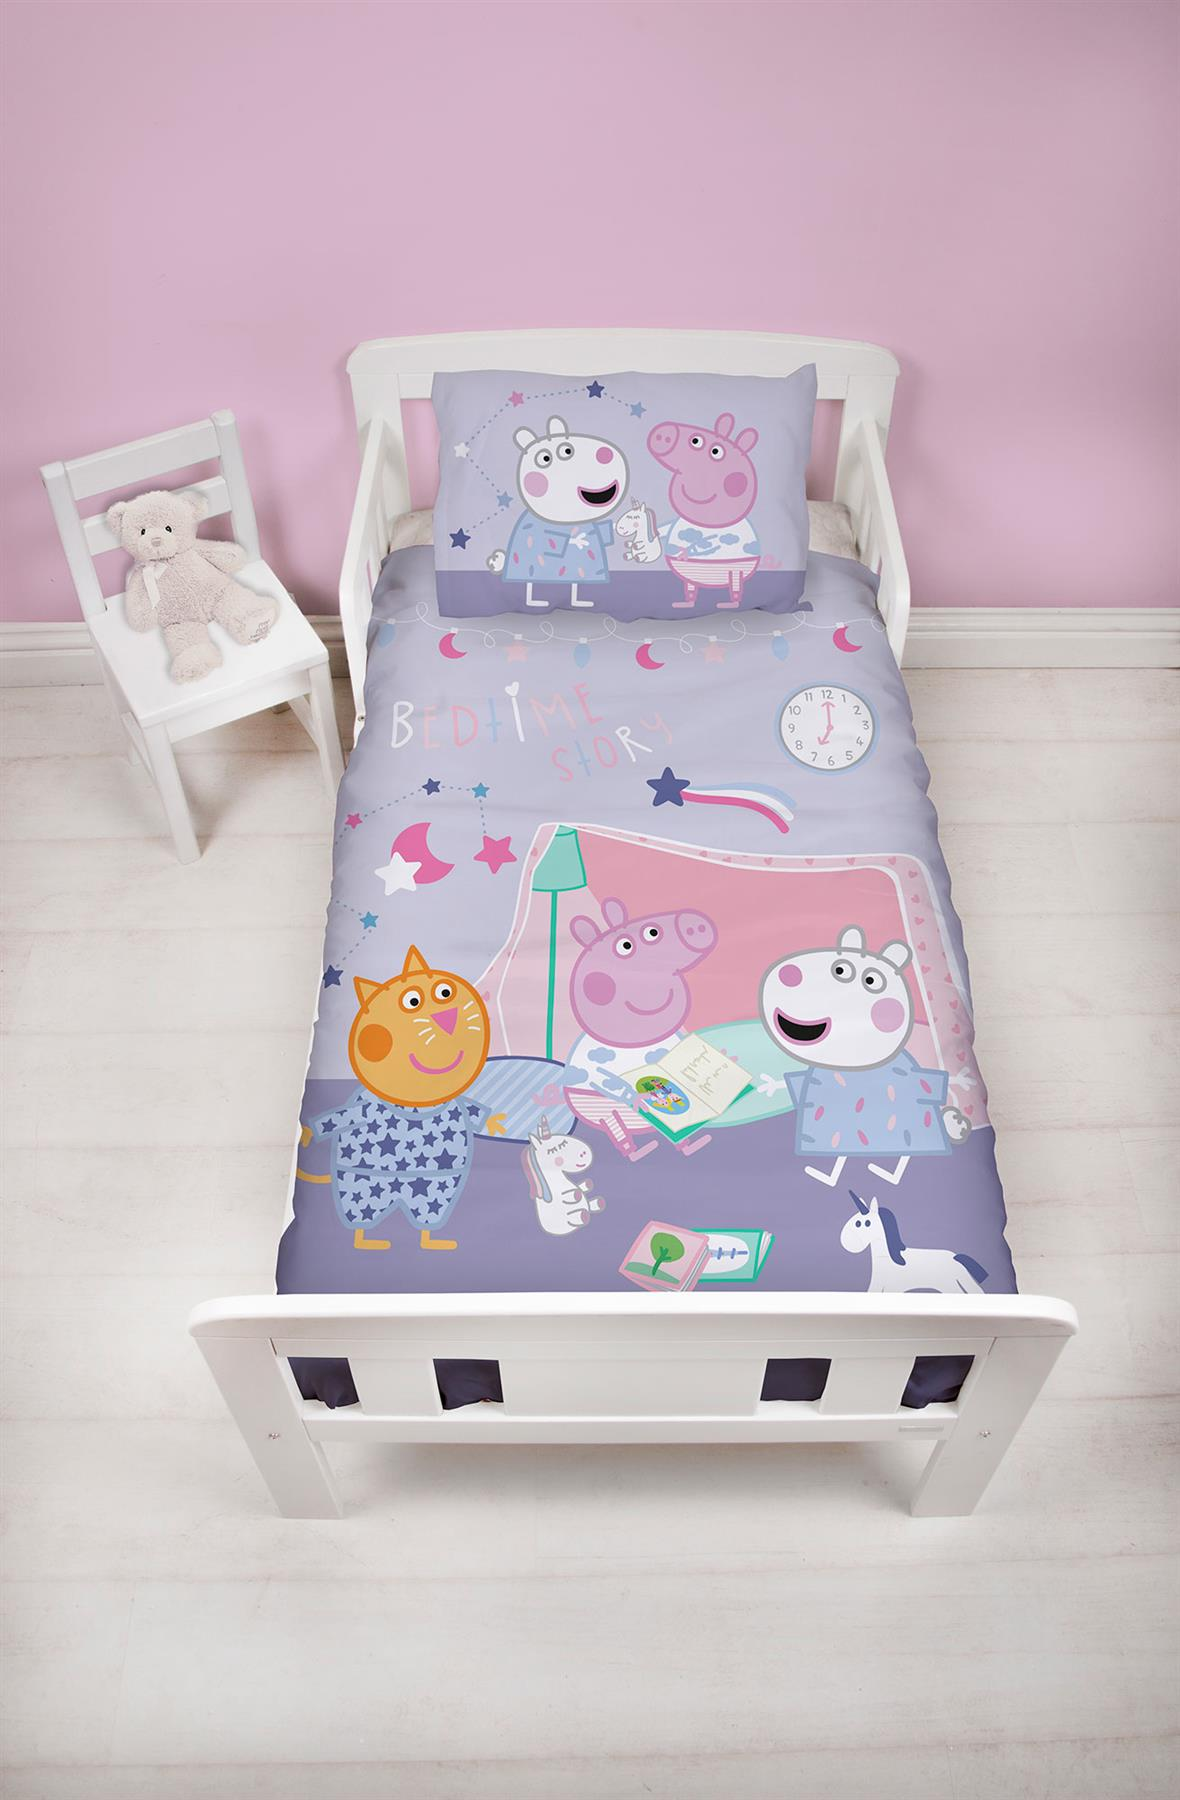 Oficial-Peppa-Pig-George-fundas-nordicas-SINGLE-doble-Ropa-De-Cama-Reversible miniatura 23